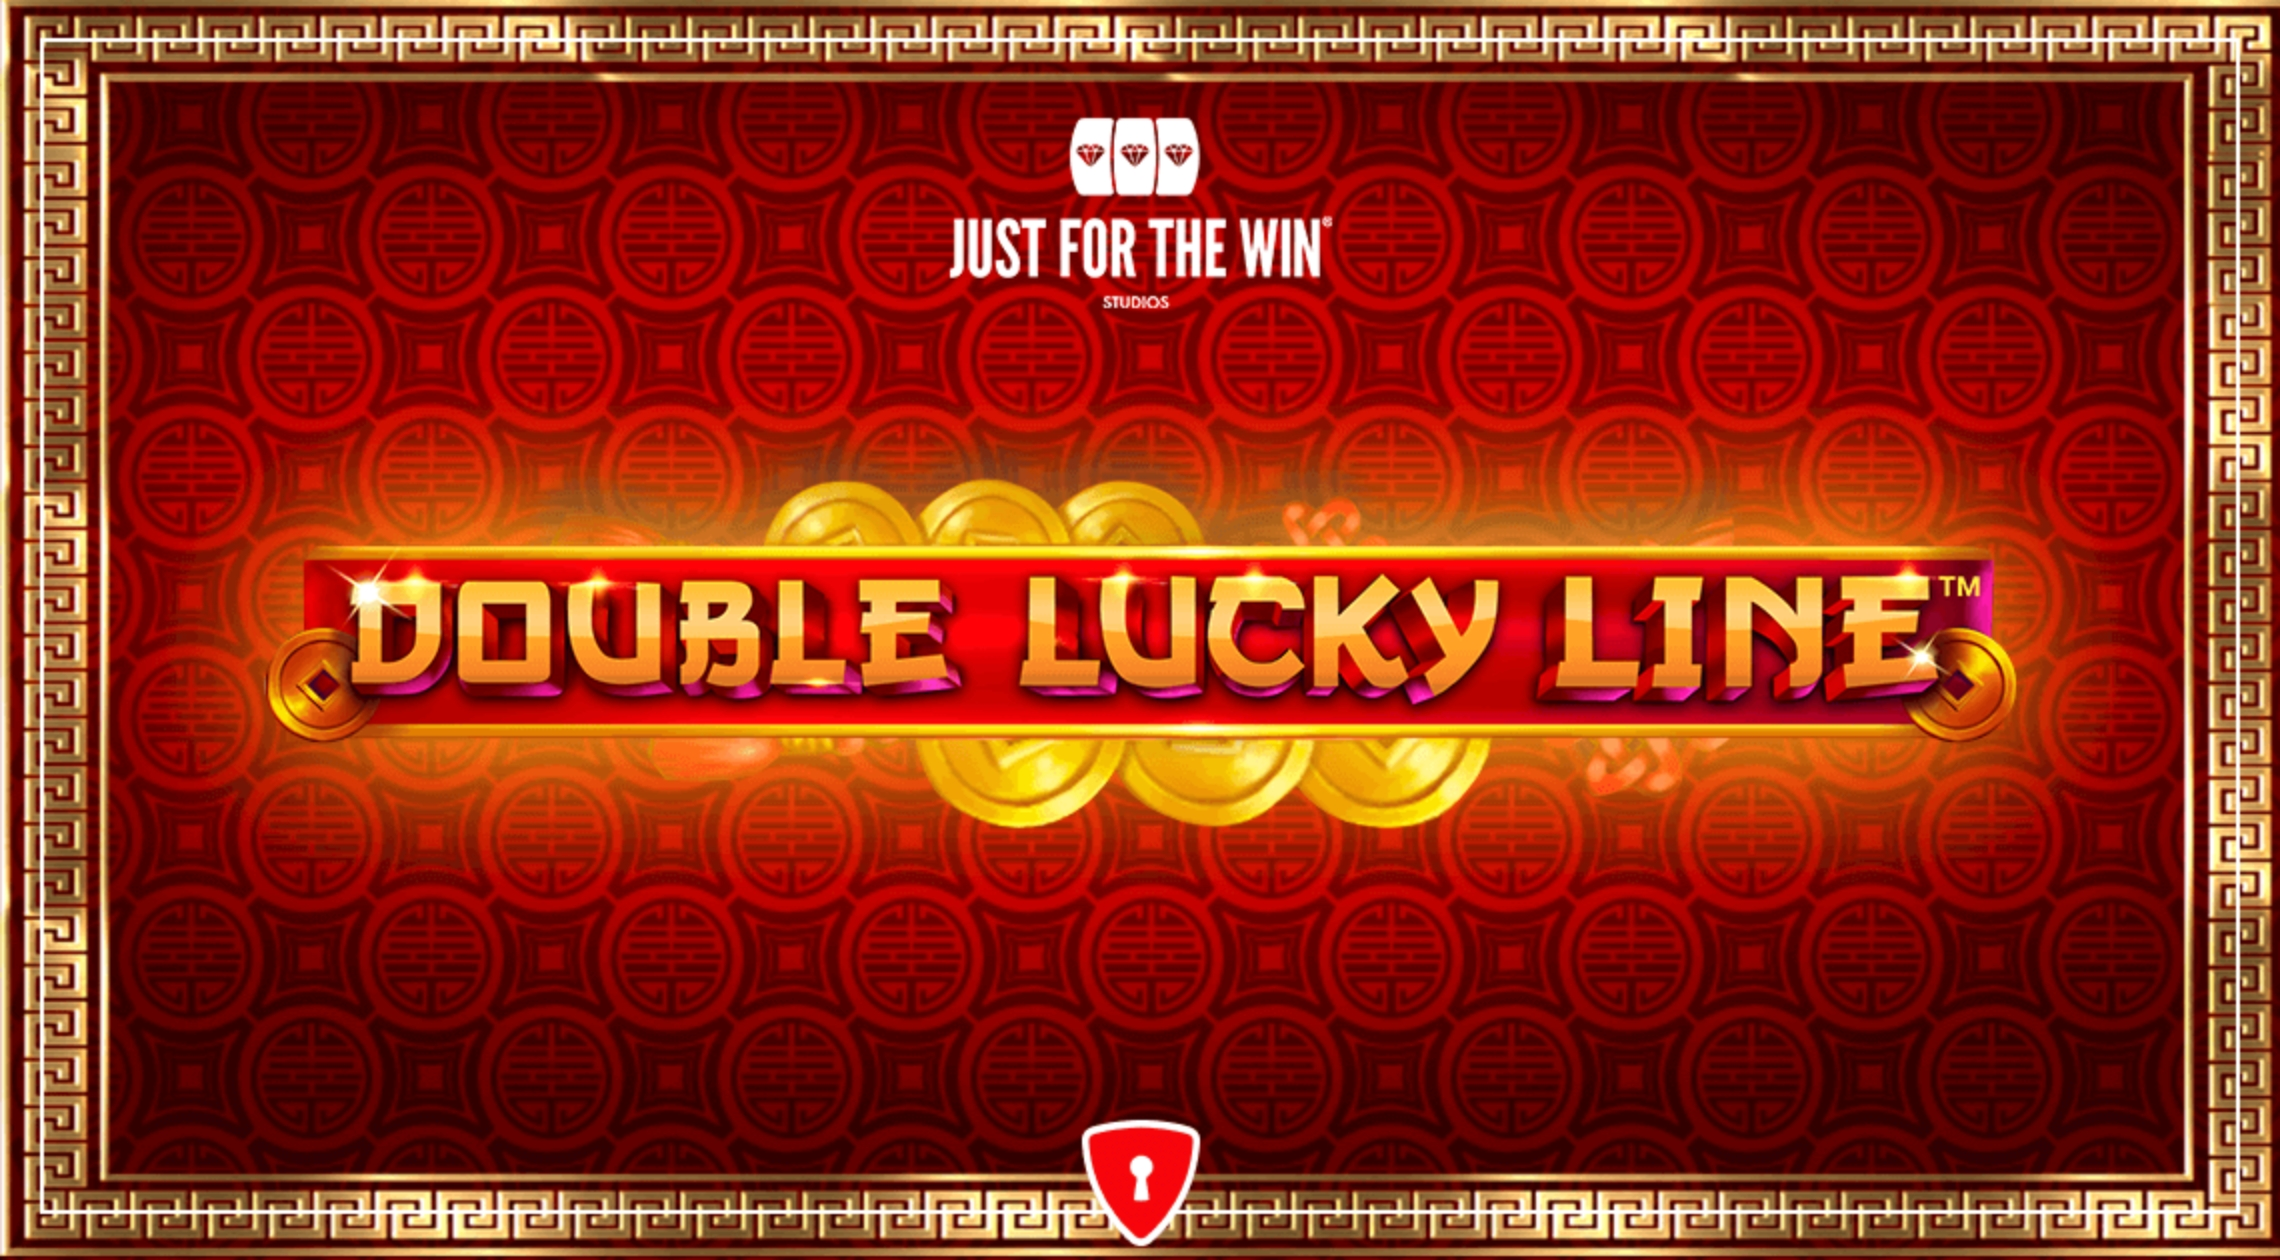 Win Money in Double Lucky Line Free Slot Game by Just For The Win